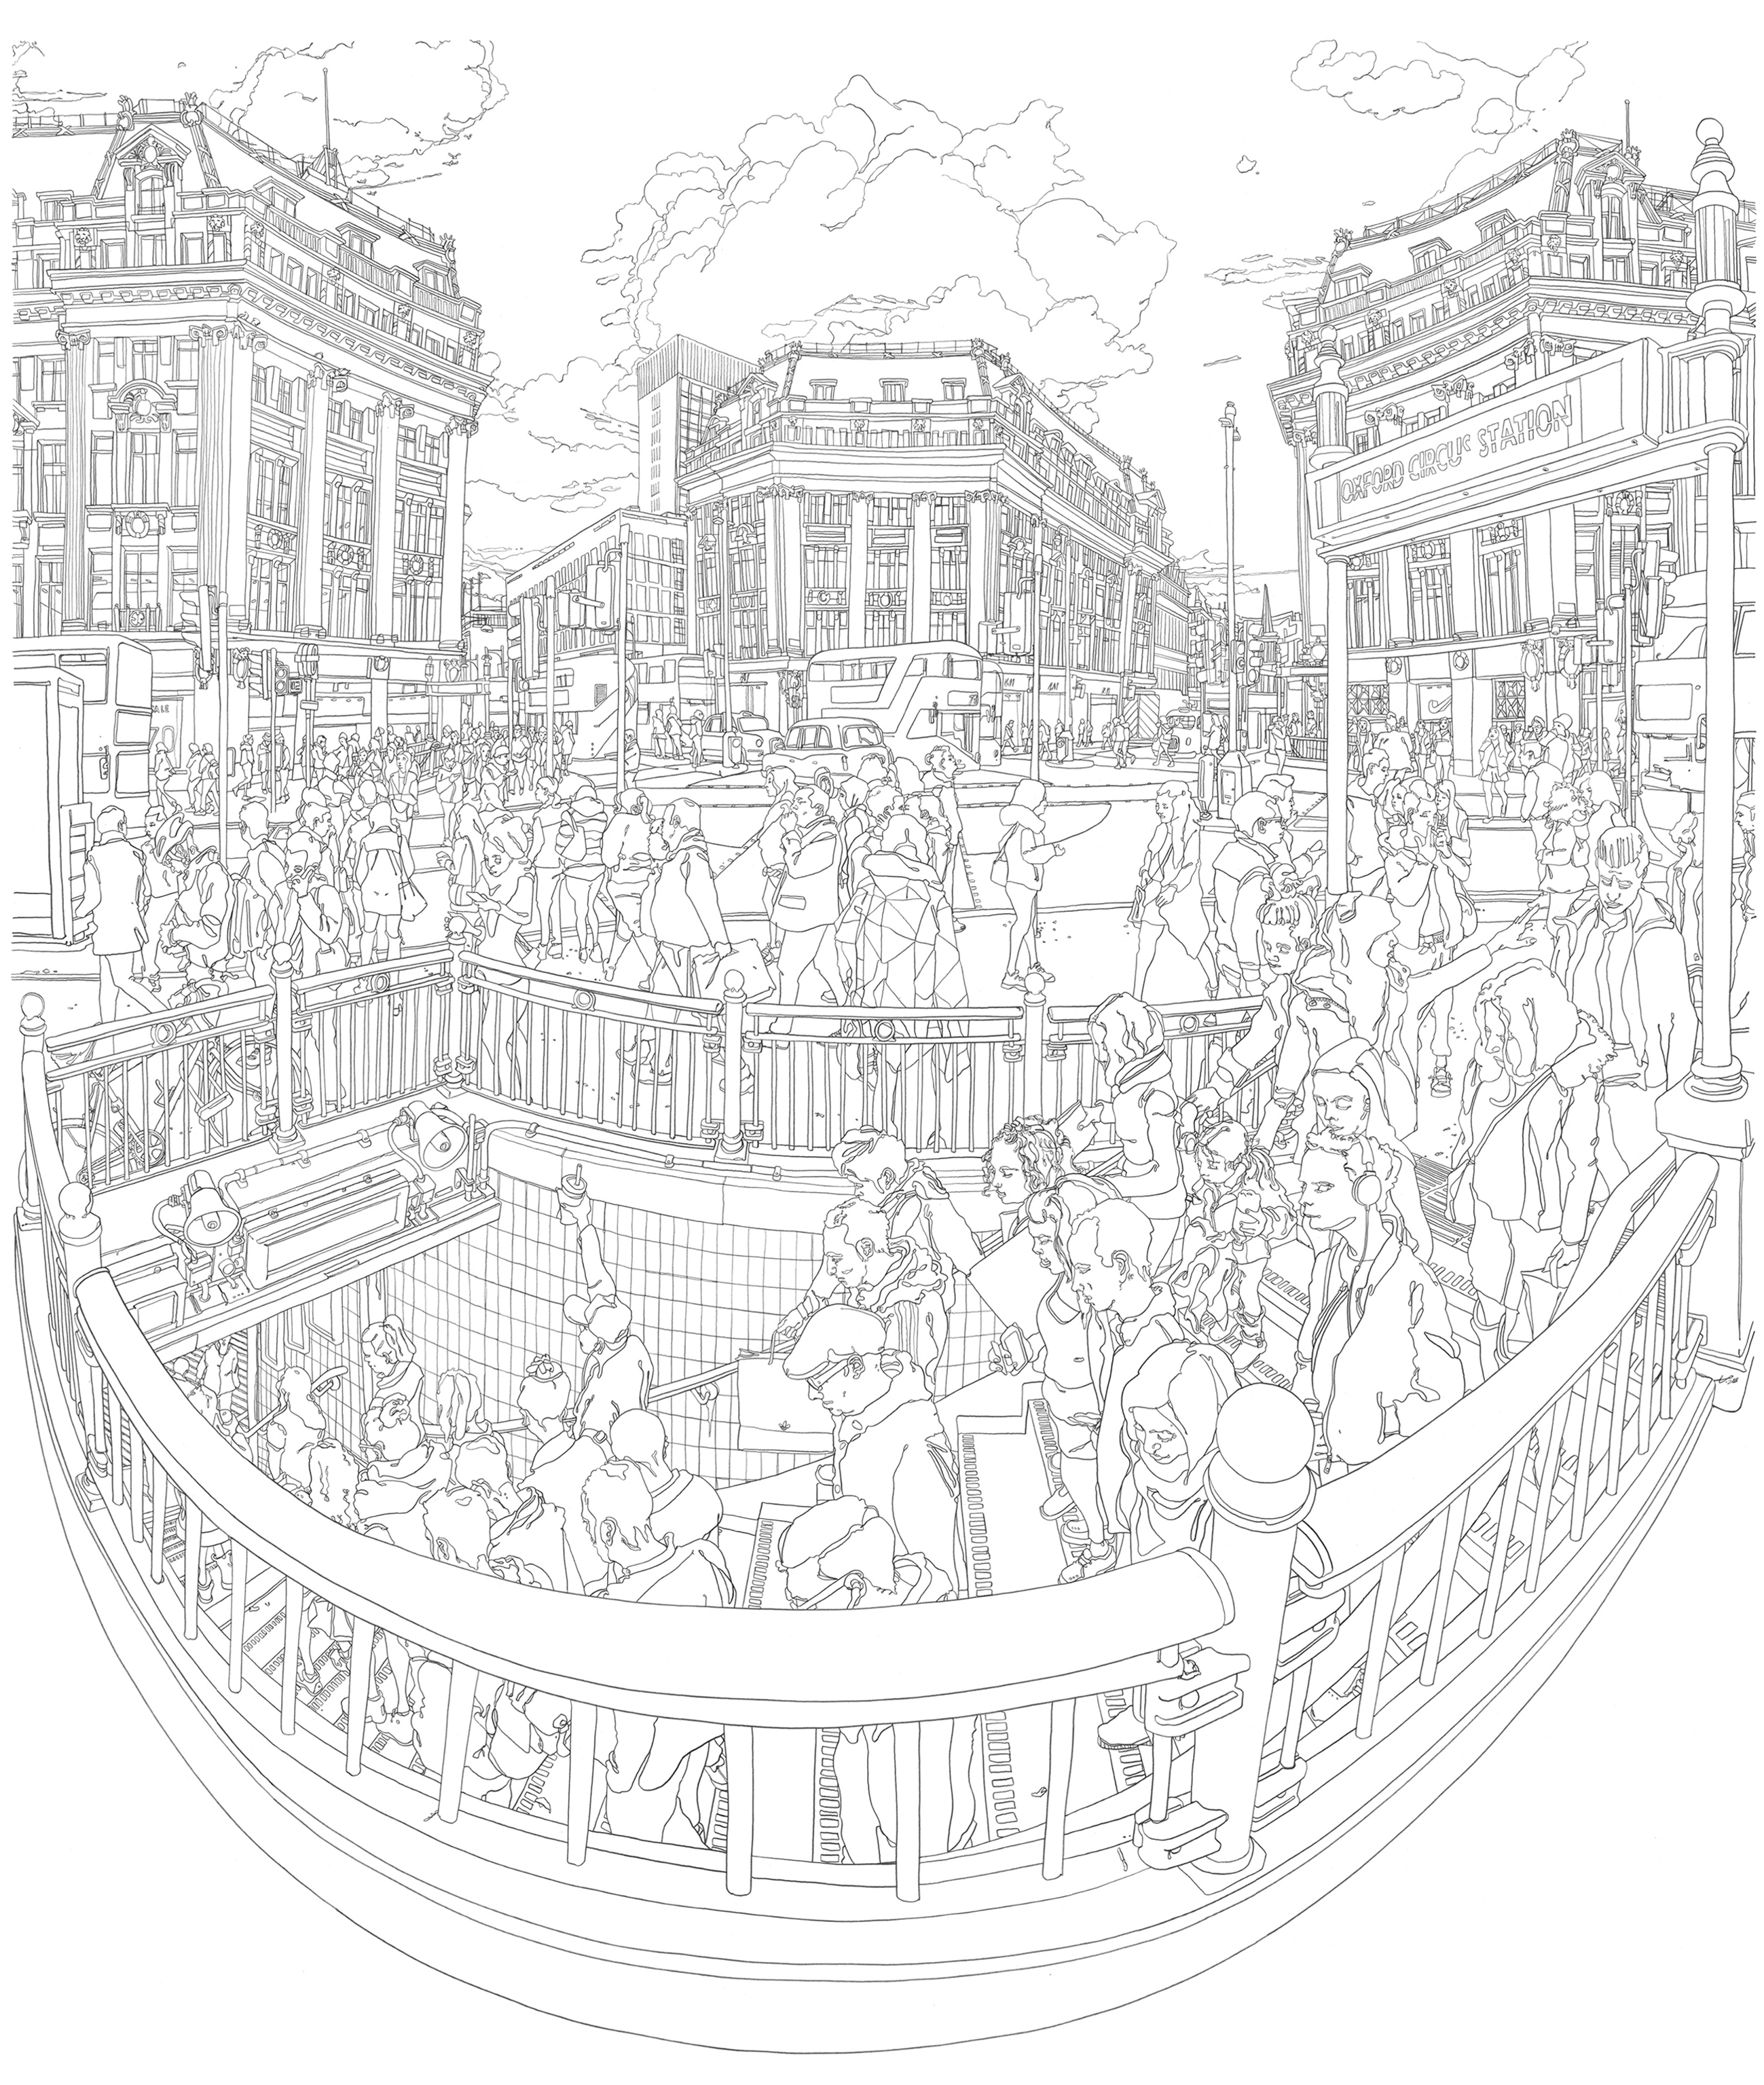 Pencil Drawing Oxford St